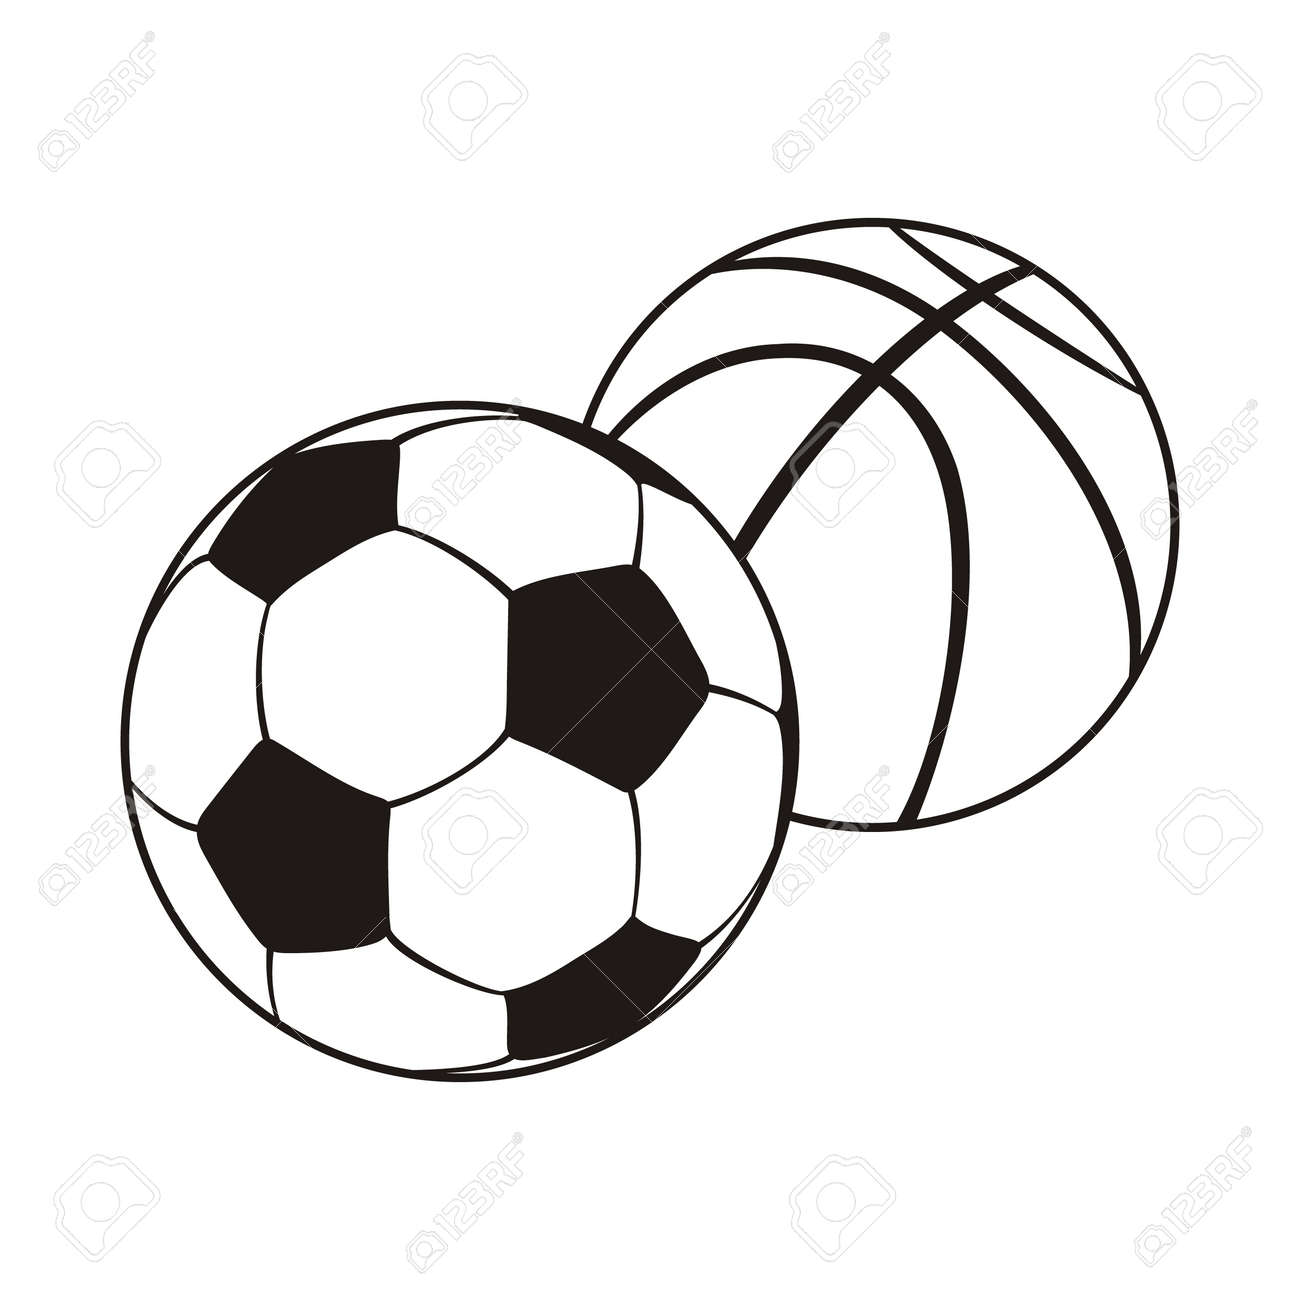 hight resolution of monochrome set ball for football and basketball black white sports balls for playing football and